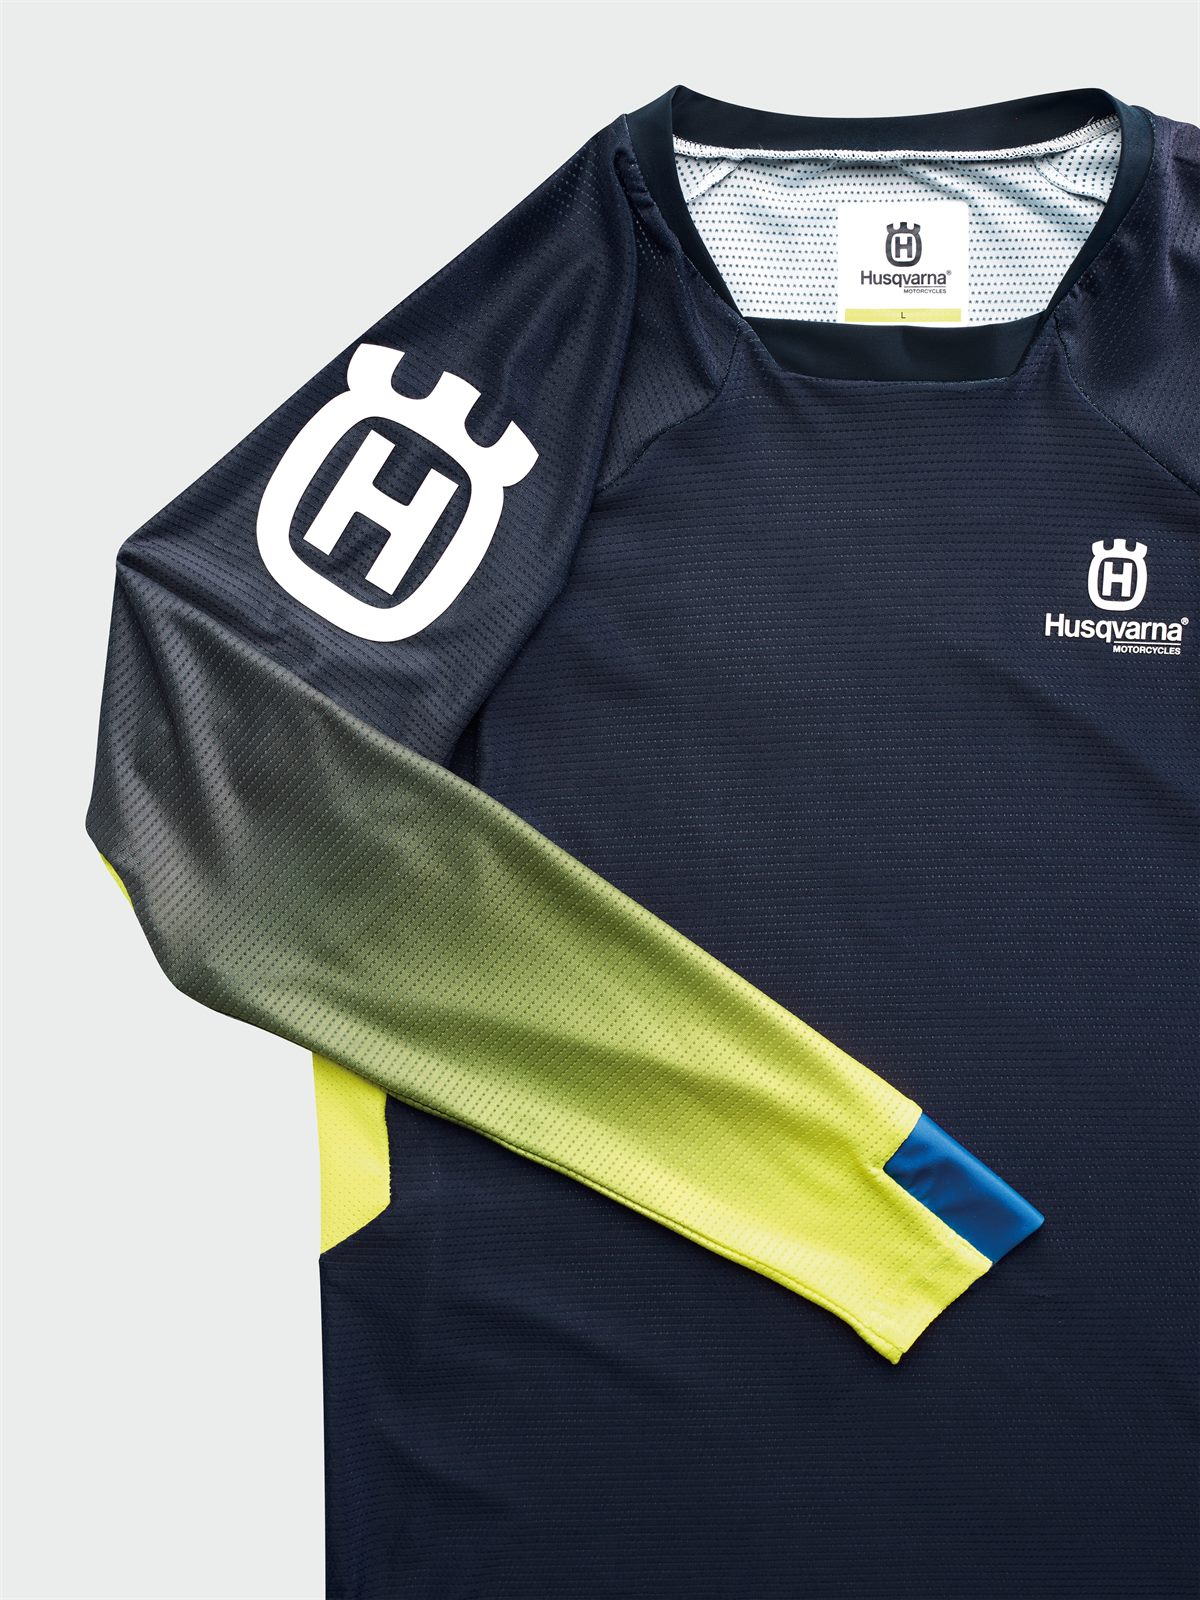 Husqvarna Motorcycles 2020 Functional Clothing Offroad Collection - KIDS RAILED SHIRT